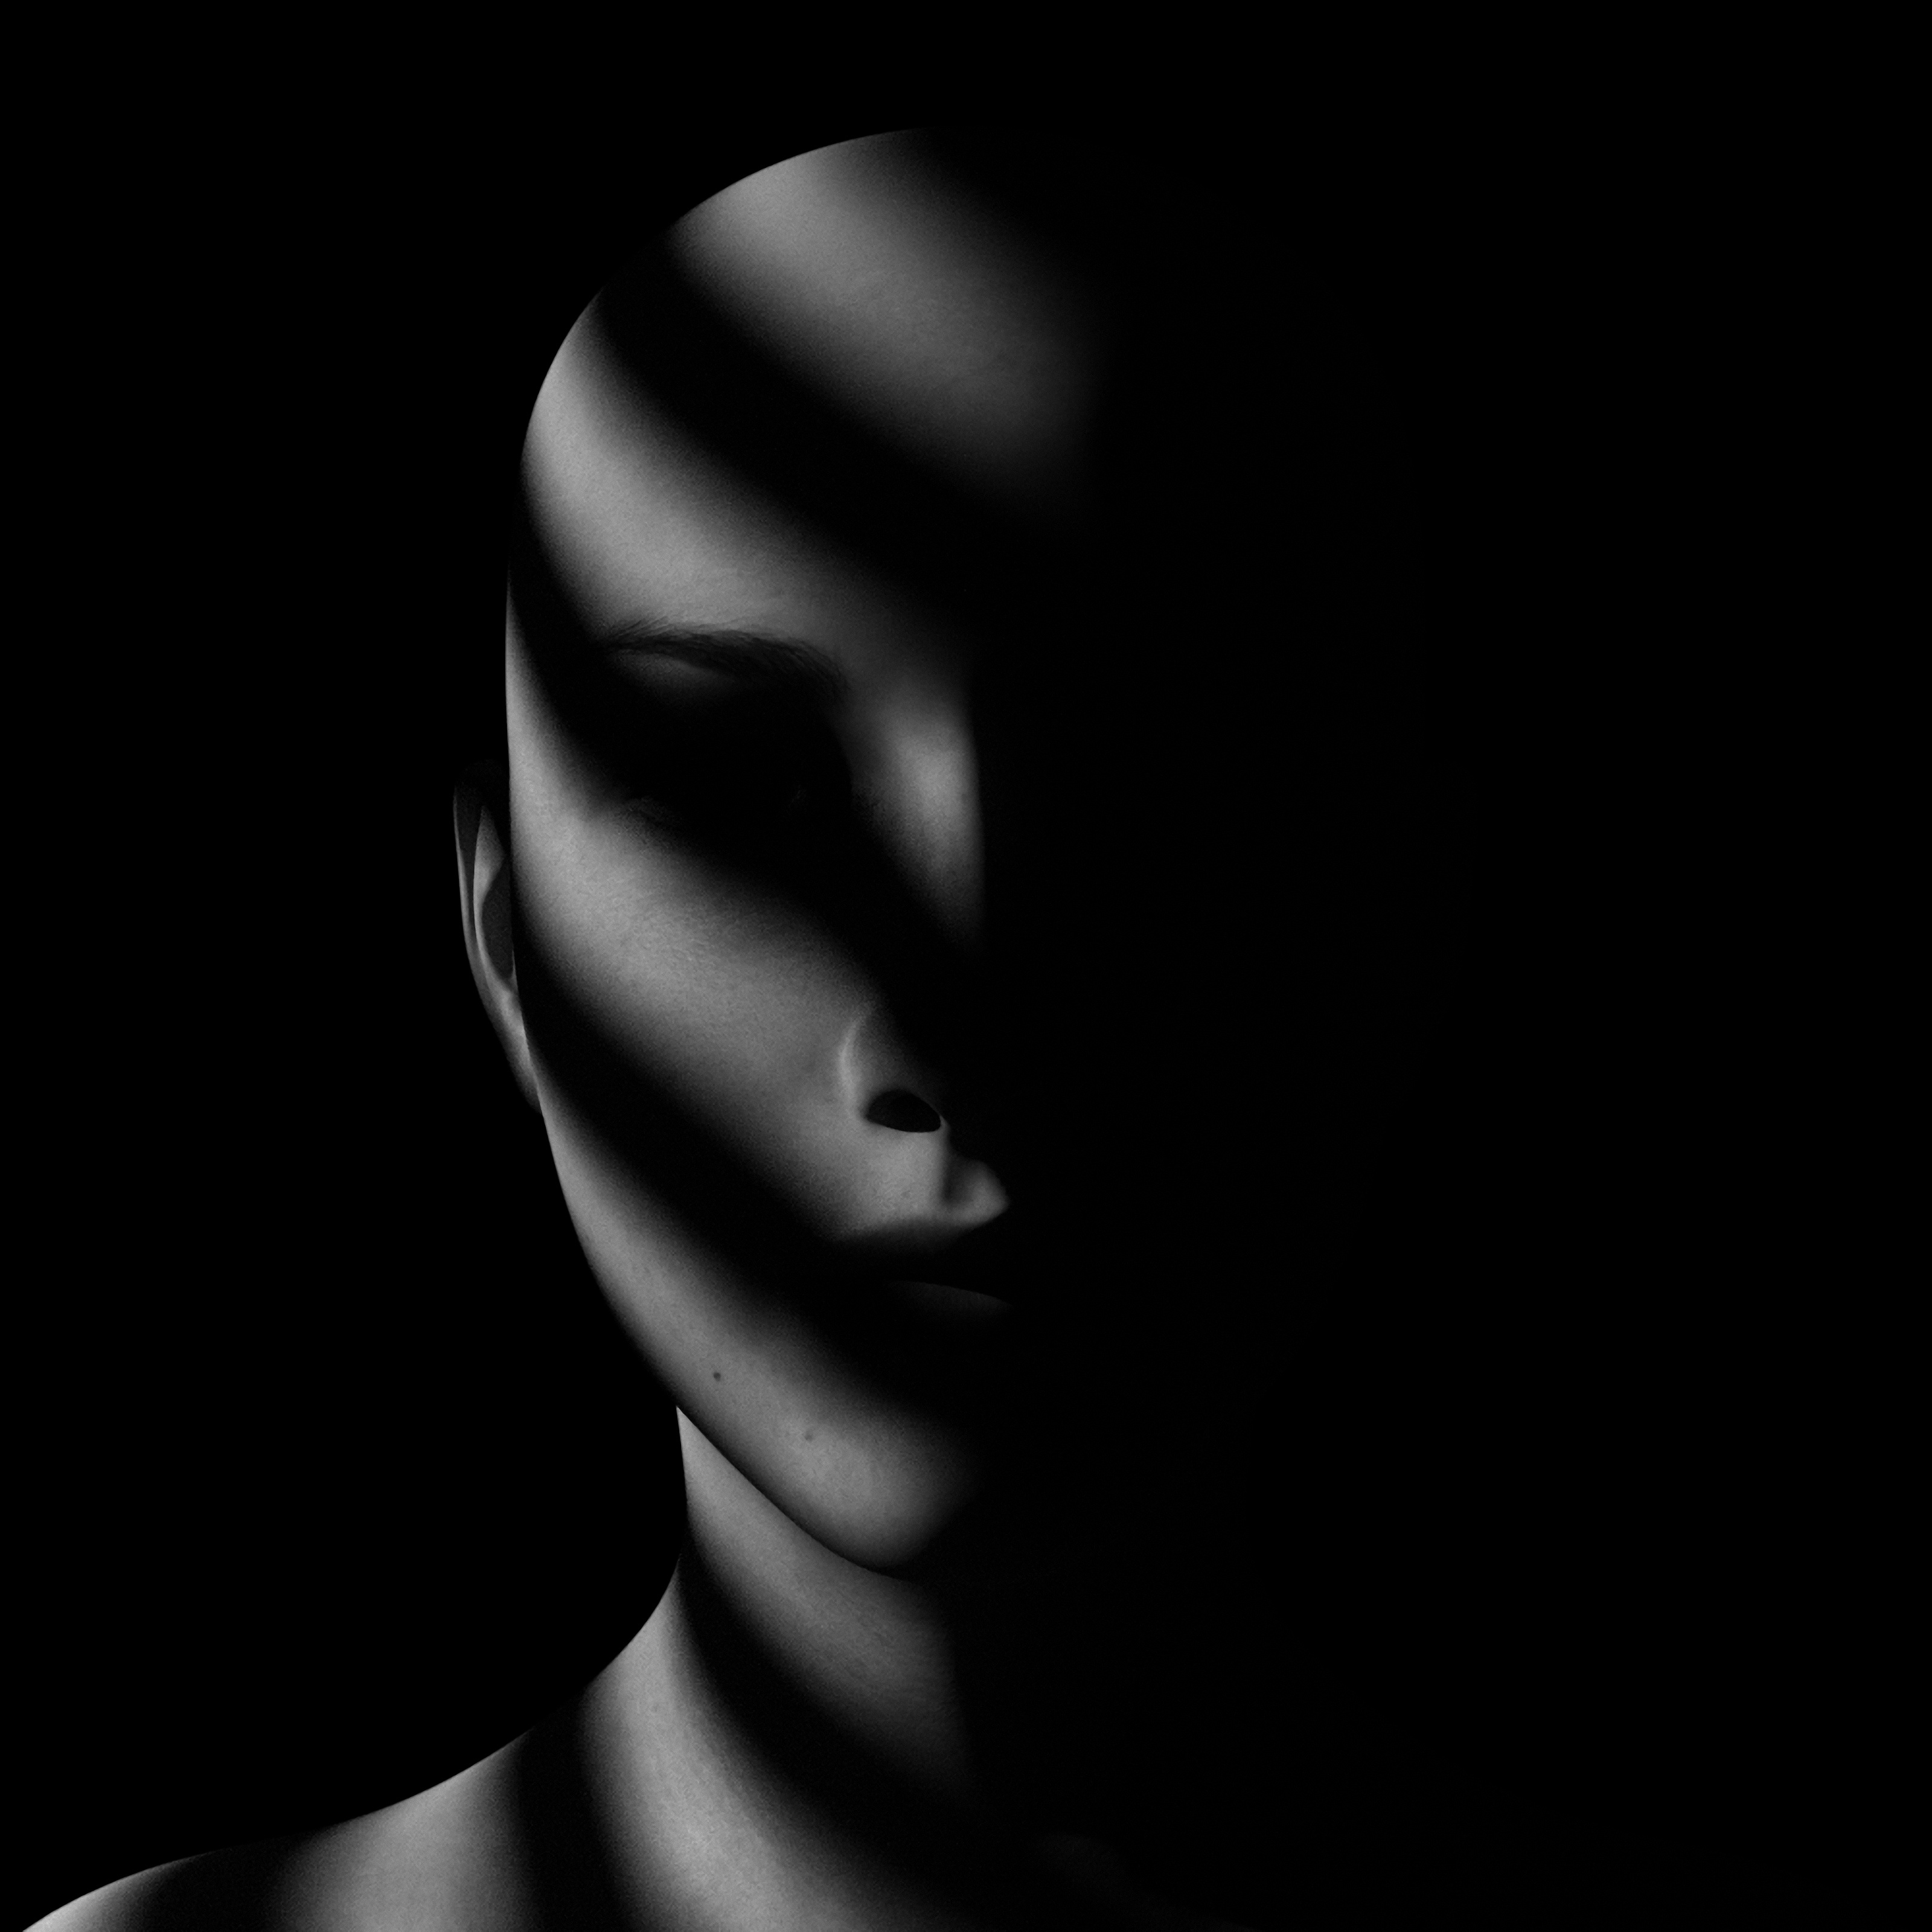 111891 Screensavers and Wallpapers Bw for phone. Download Dark, Shadow, Bw, Chb, Portrait, Face, Doll, Noir pictures for free